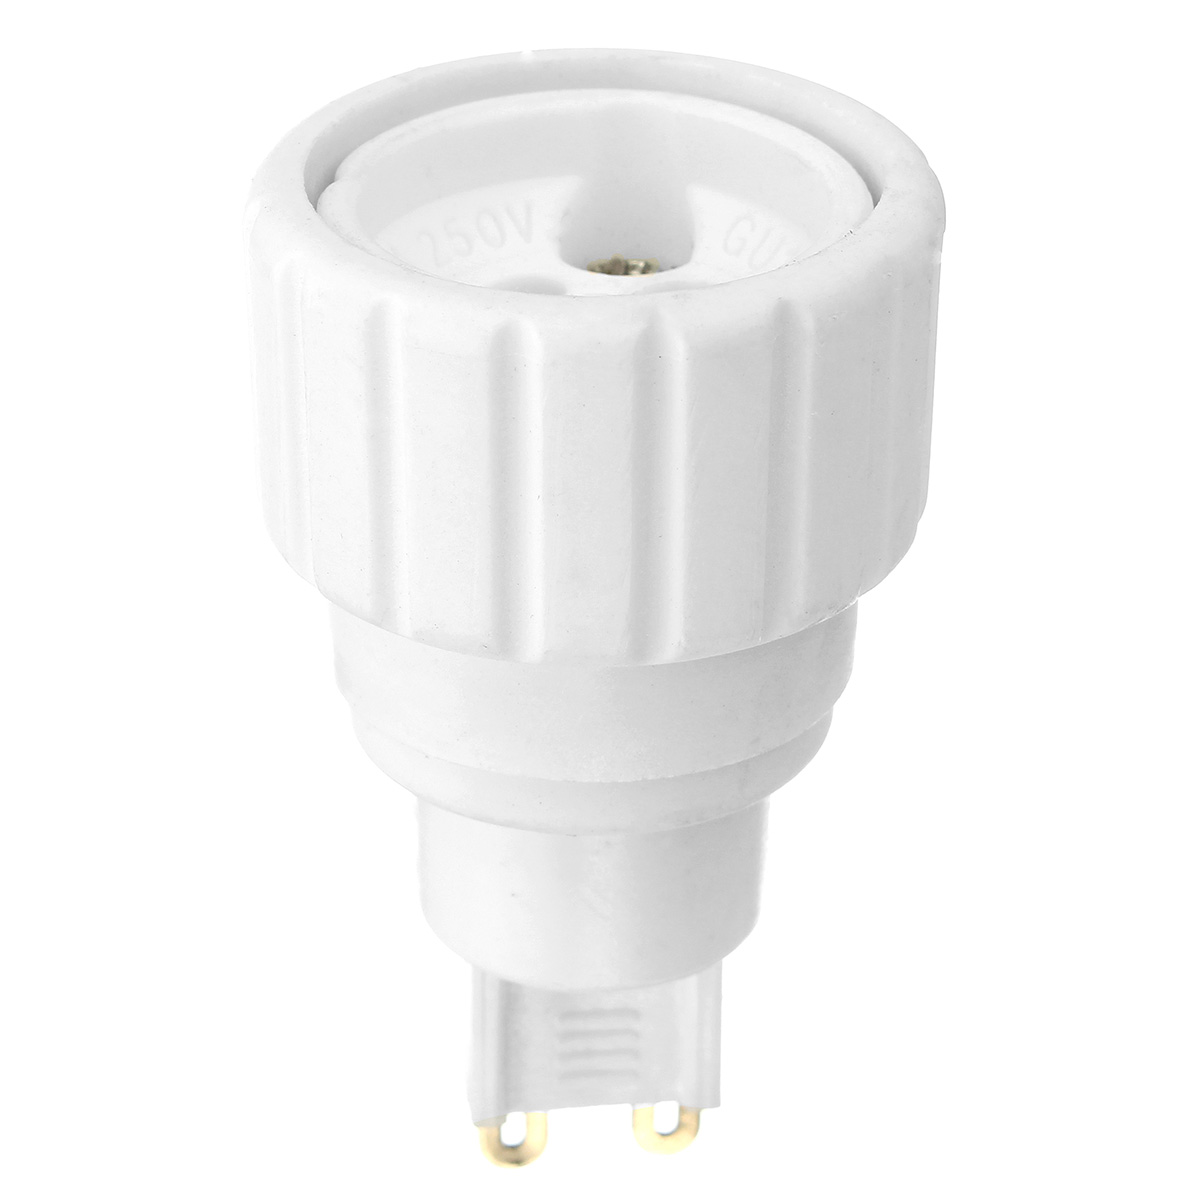 G9 To GU10 LED Light Bulb Base Screw Adapter Holder Socket Converter 220V 5A